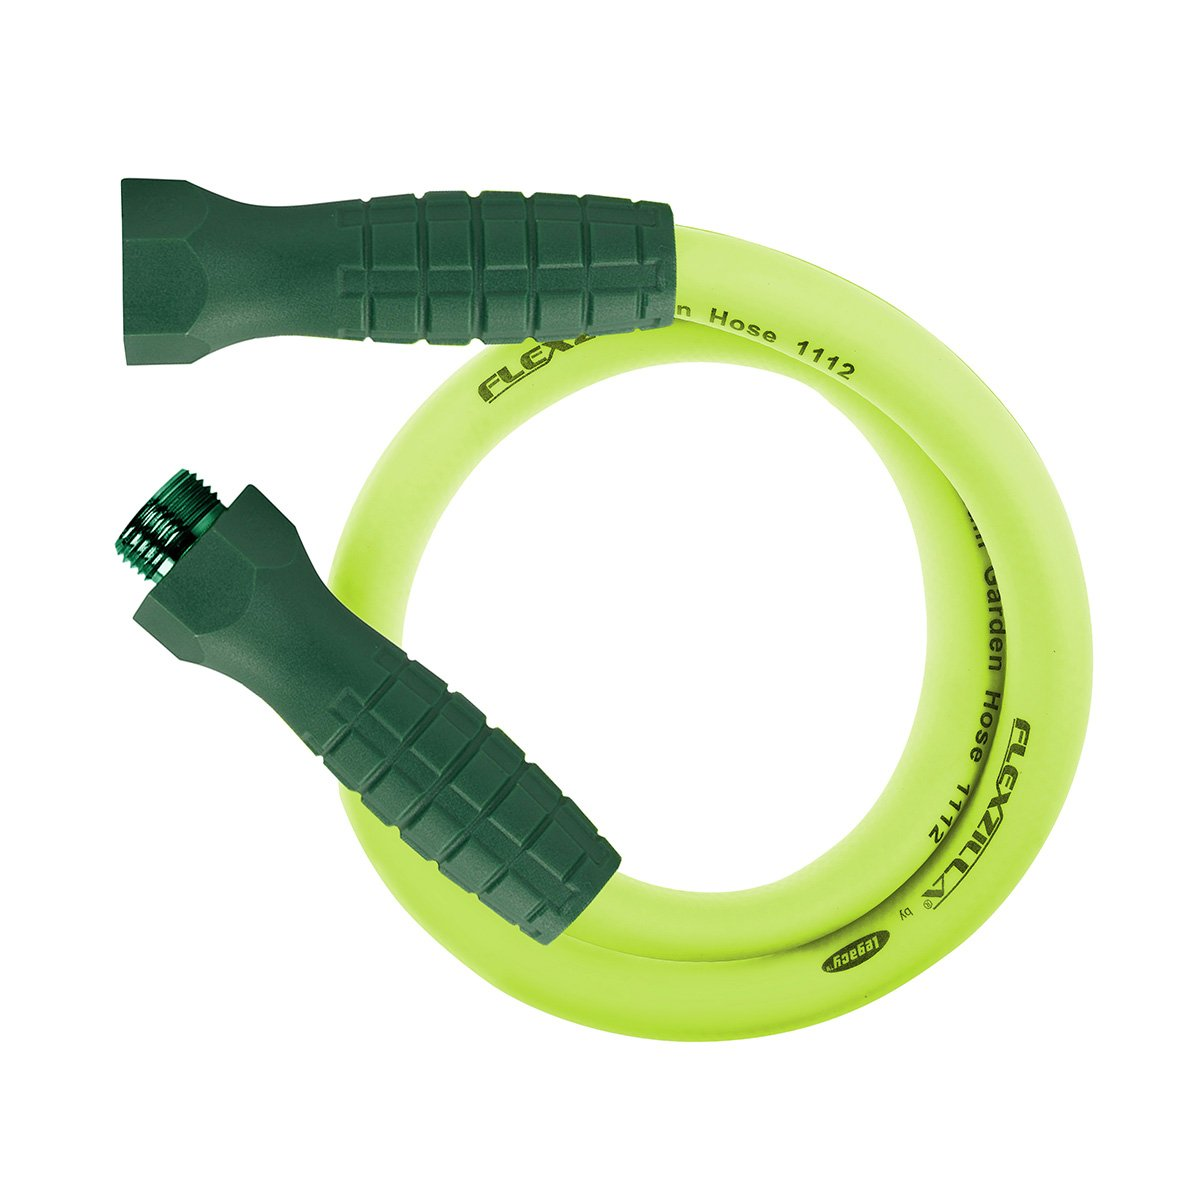 Amazoncom Flexzilla Garden Hose 58 in x 50 ft Heavy Duty